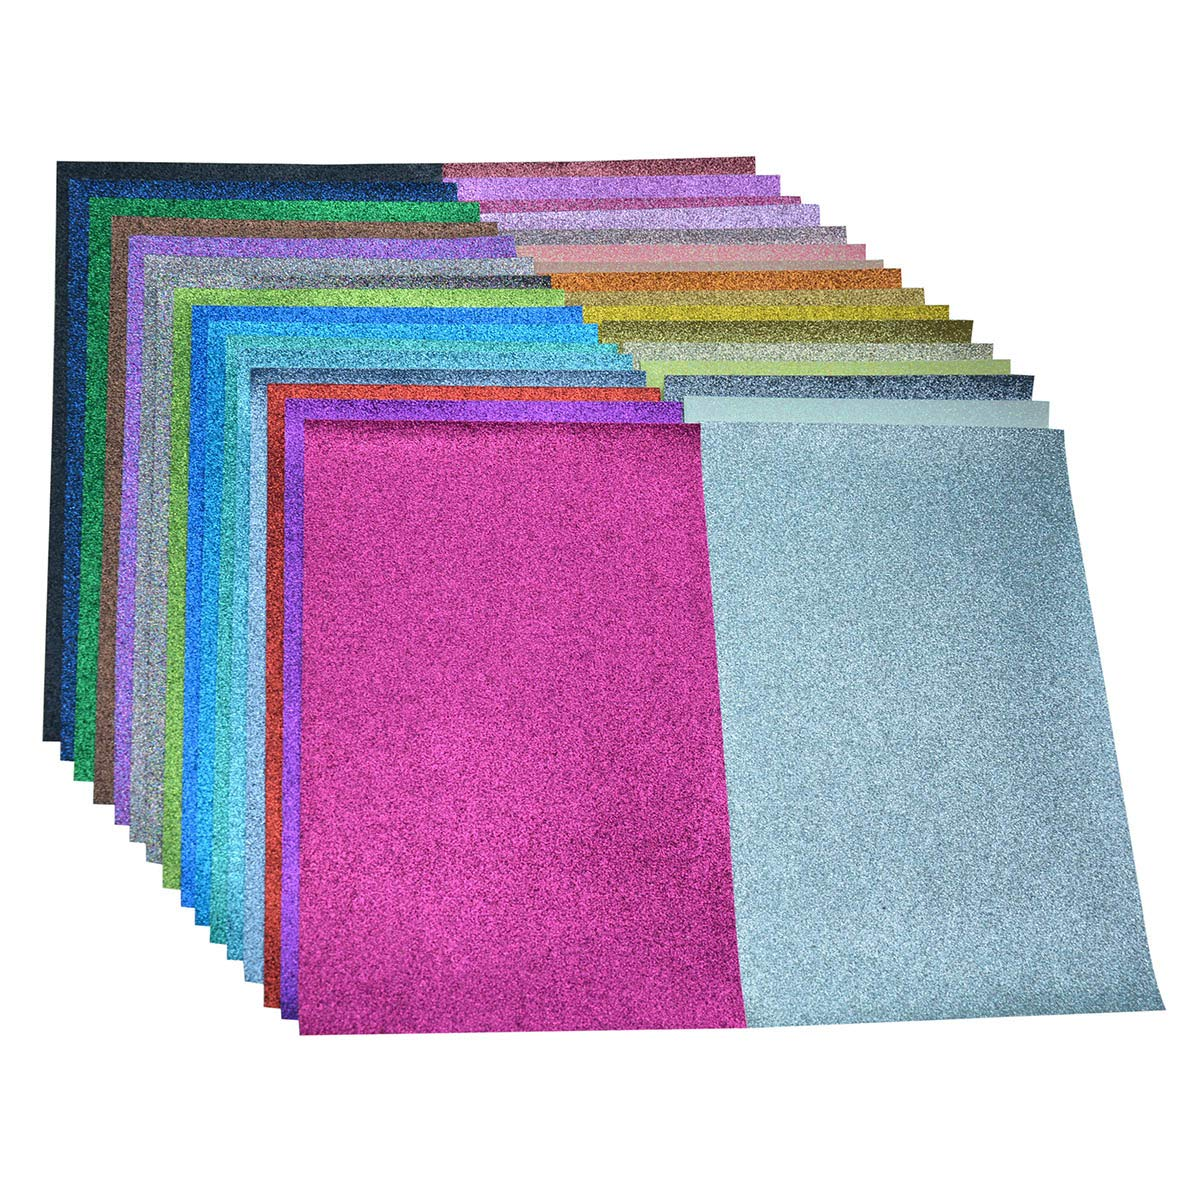 Faux Leather Glitter Canvas Sheets- 32 Pieces Assorted Colors A4 Size(8 X 12 Inch)Shiny Glitter Fabric Sheets for Bows, Earrings, Hair Accessories Making(32 Colors, Each Color One Sheet)